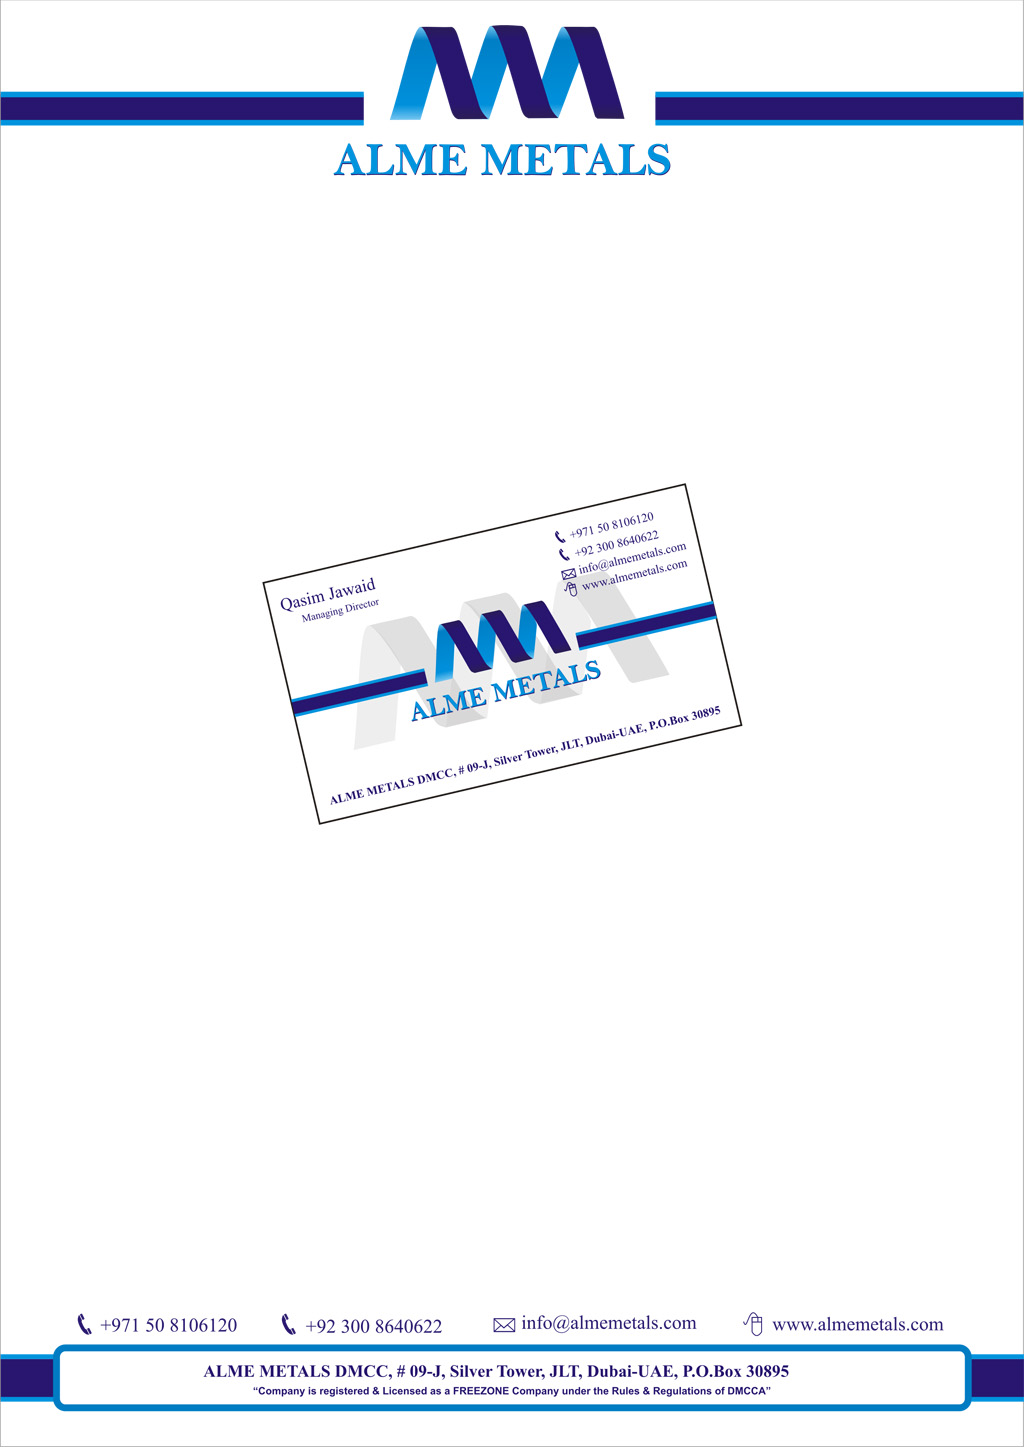 Letterhead With Logo  Free Printable Letterhead. Resume Format Reddit. Resume Cover Letter Construction. Resume Writing Nj. Resume Format Monster. Resume Template Microsoft Word 2007. Letter Writing Format In English. Resume Template Word Finance. Resume Genius Scholarship